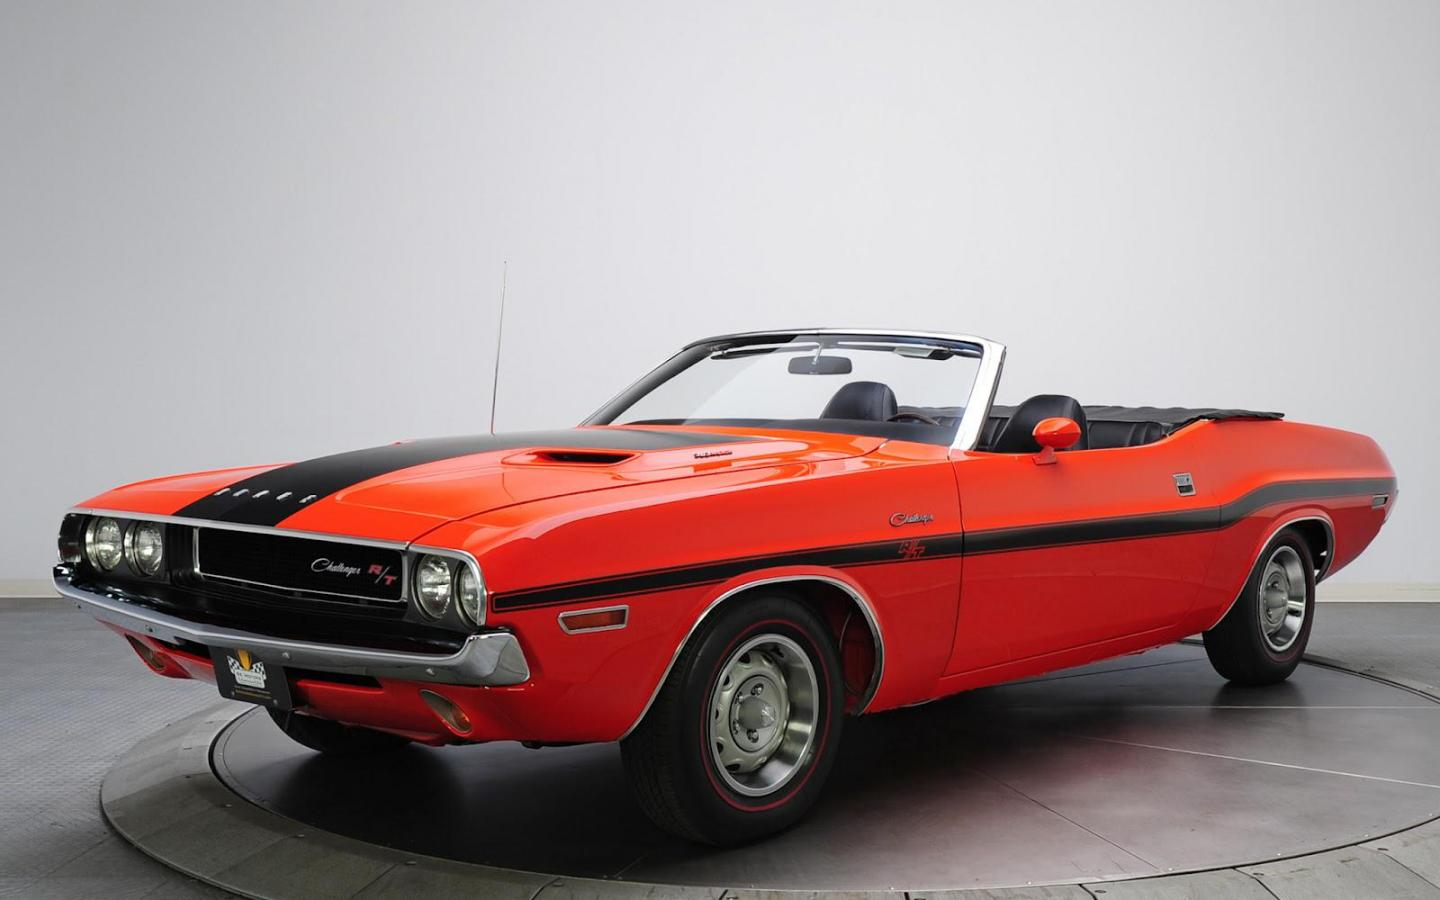 challenger r t   158872   High Quality and Resolution Wallpapers 1440x900